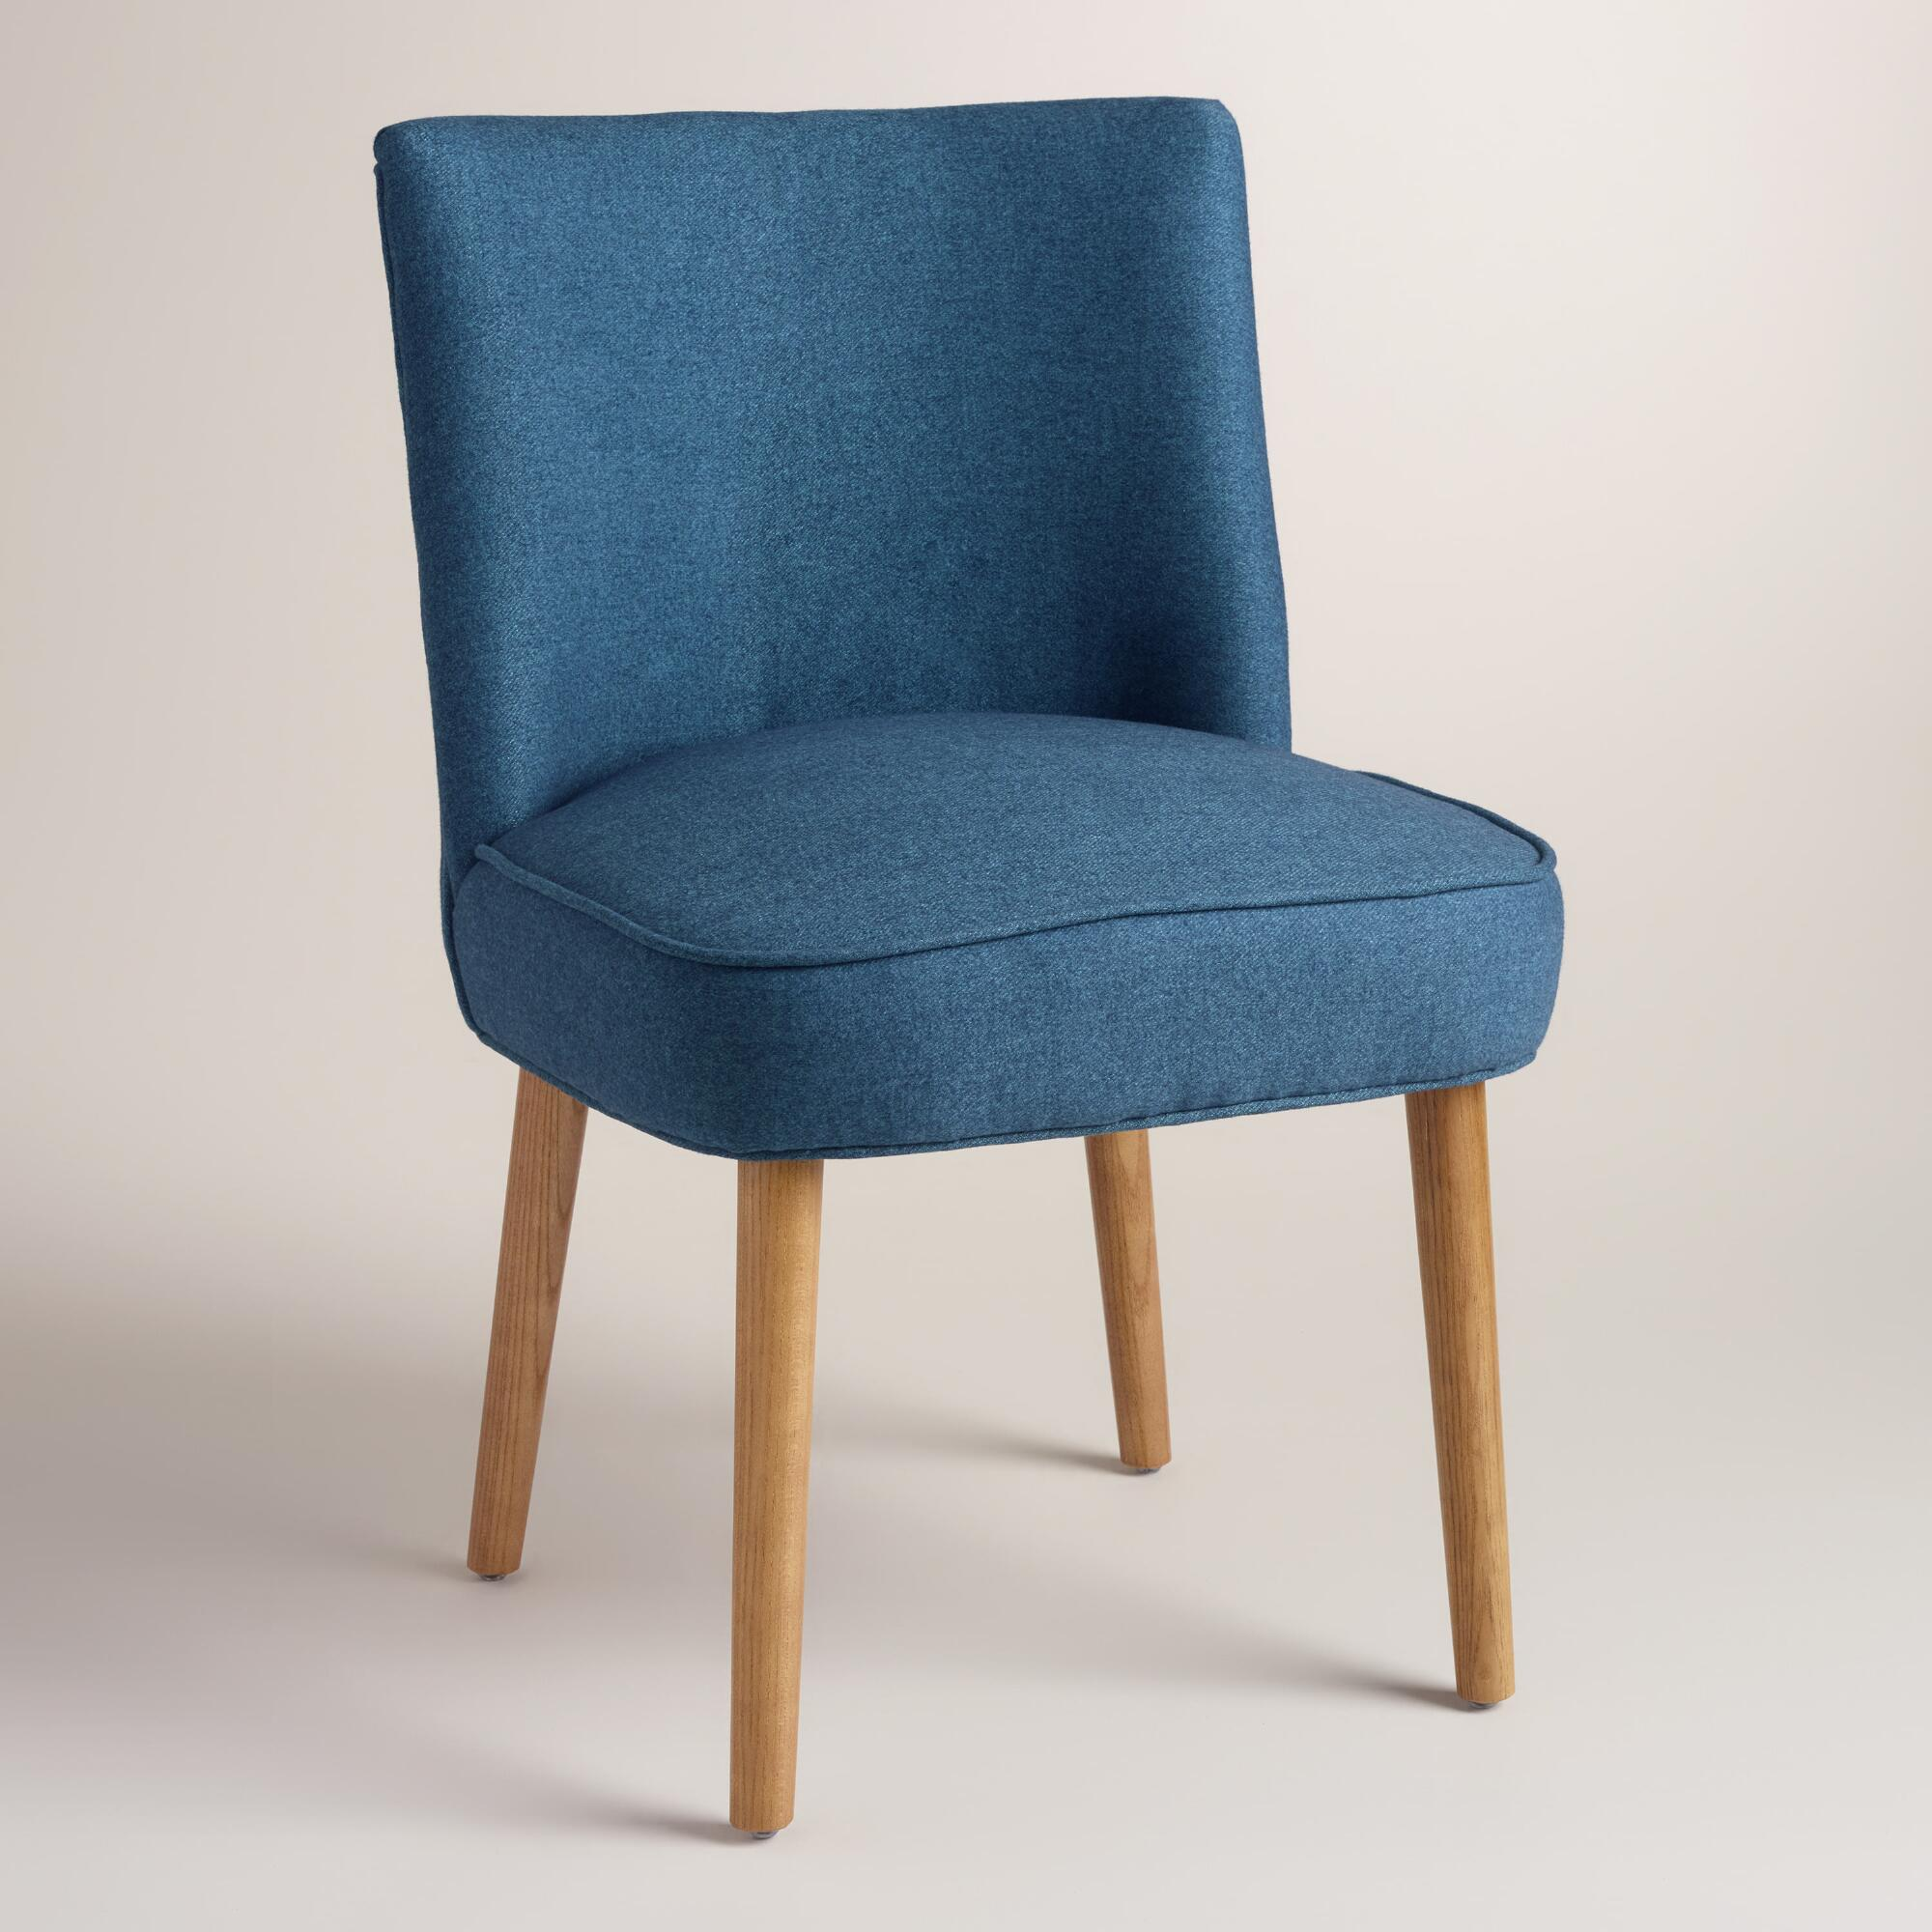 Teal Blue Dining Chairs Images